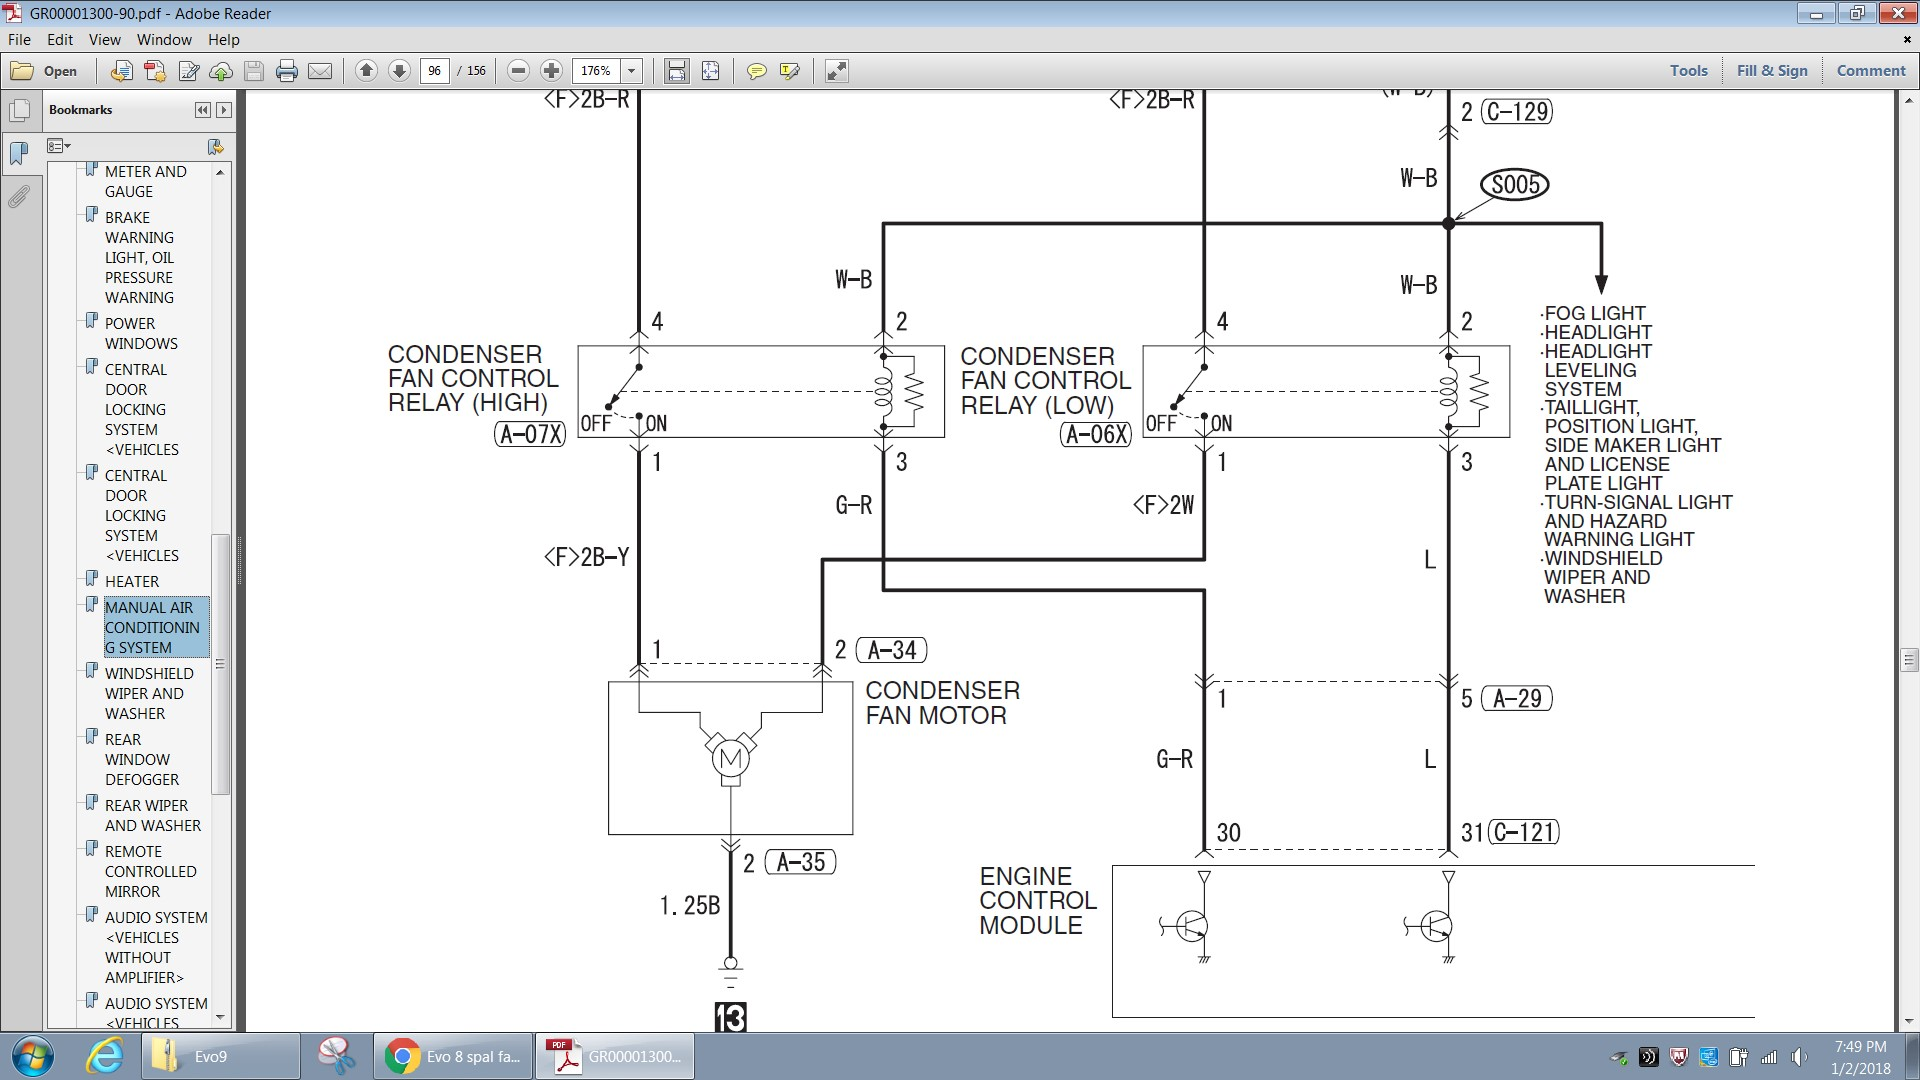 spal fan wiring diagram cement process flow controller relay